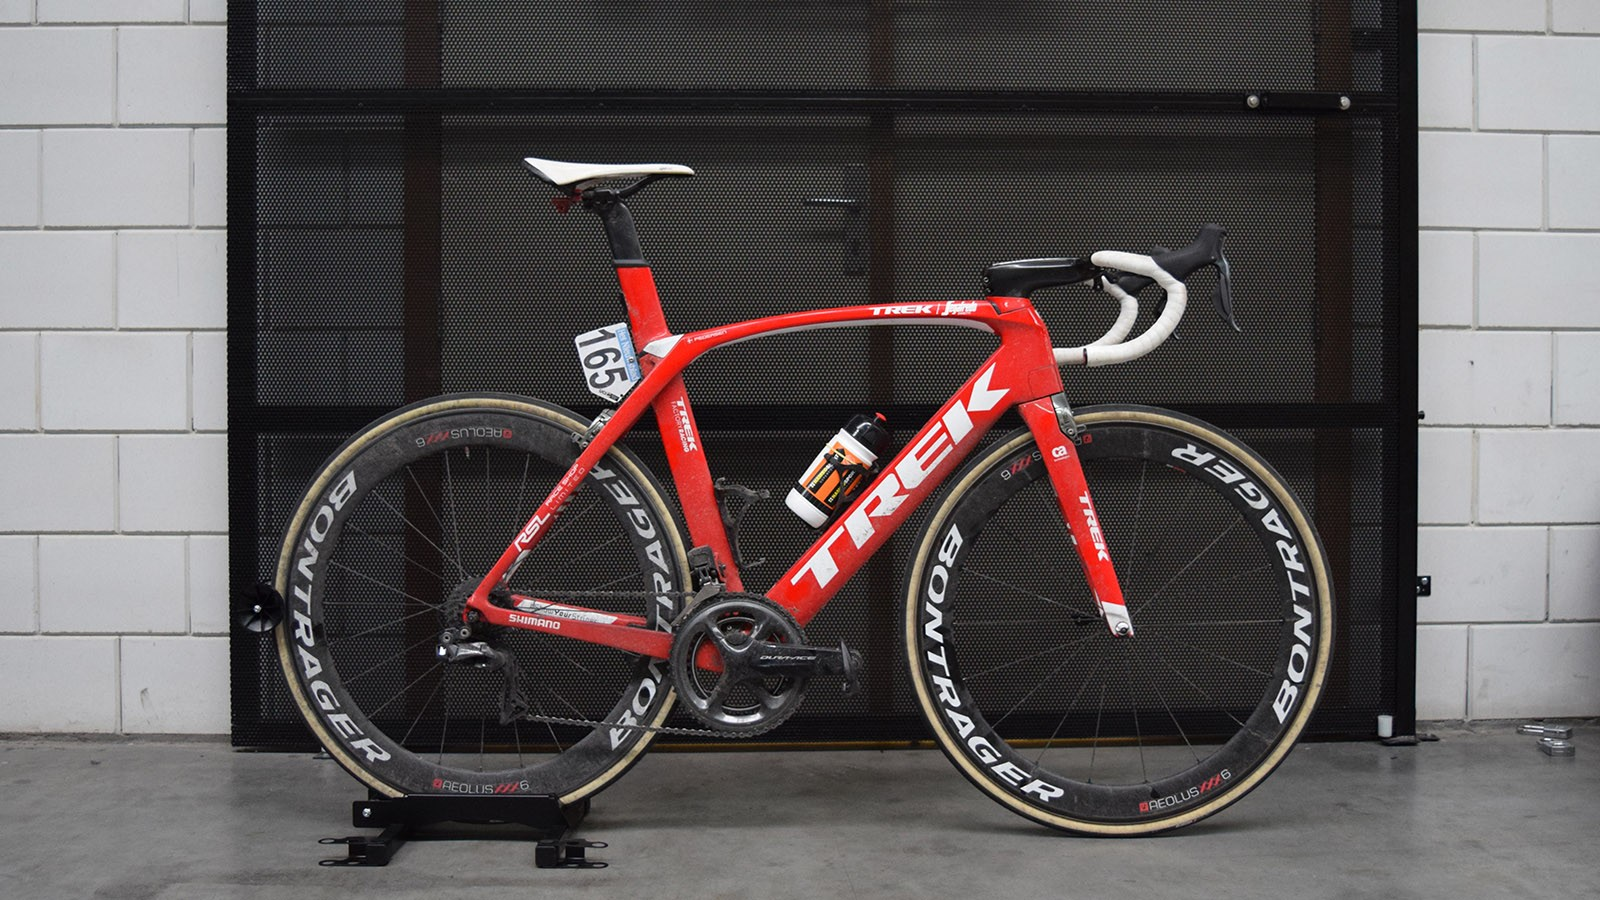 Mads Pedersen's Trek Madone 9 Race Shop Limited for the 2018 Tour of Flanders